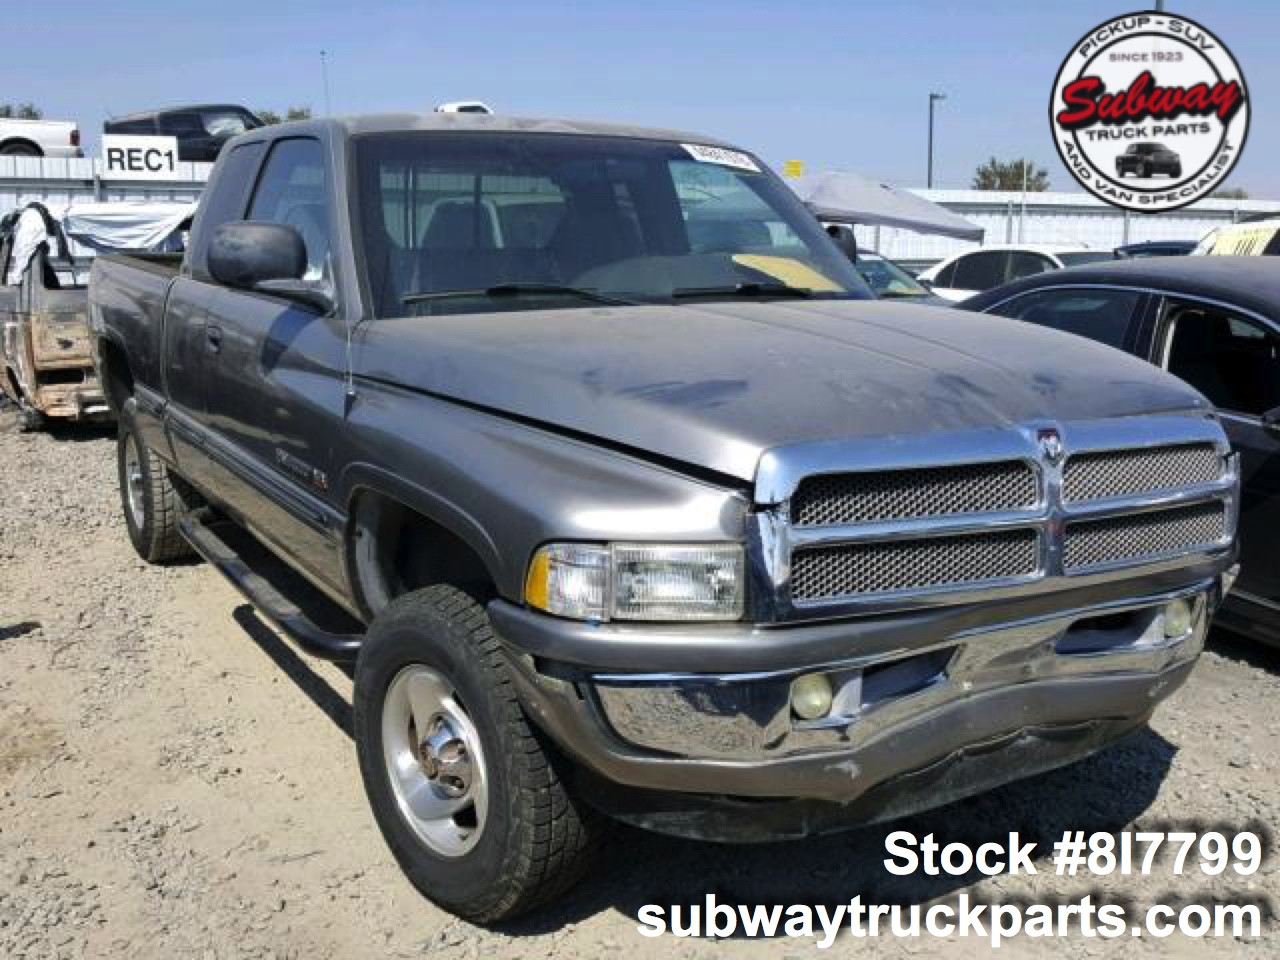 Dodge Truck Parts >> Used Parts 1999 Dodge Ram 1500 5 9l 4x4 Subway Truck Parts